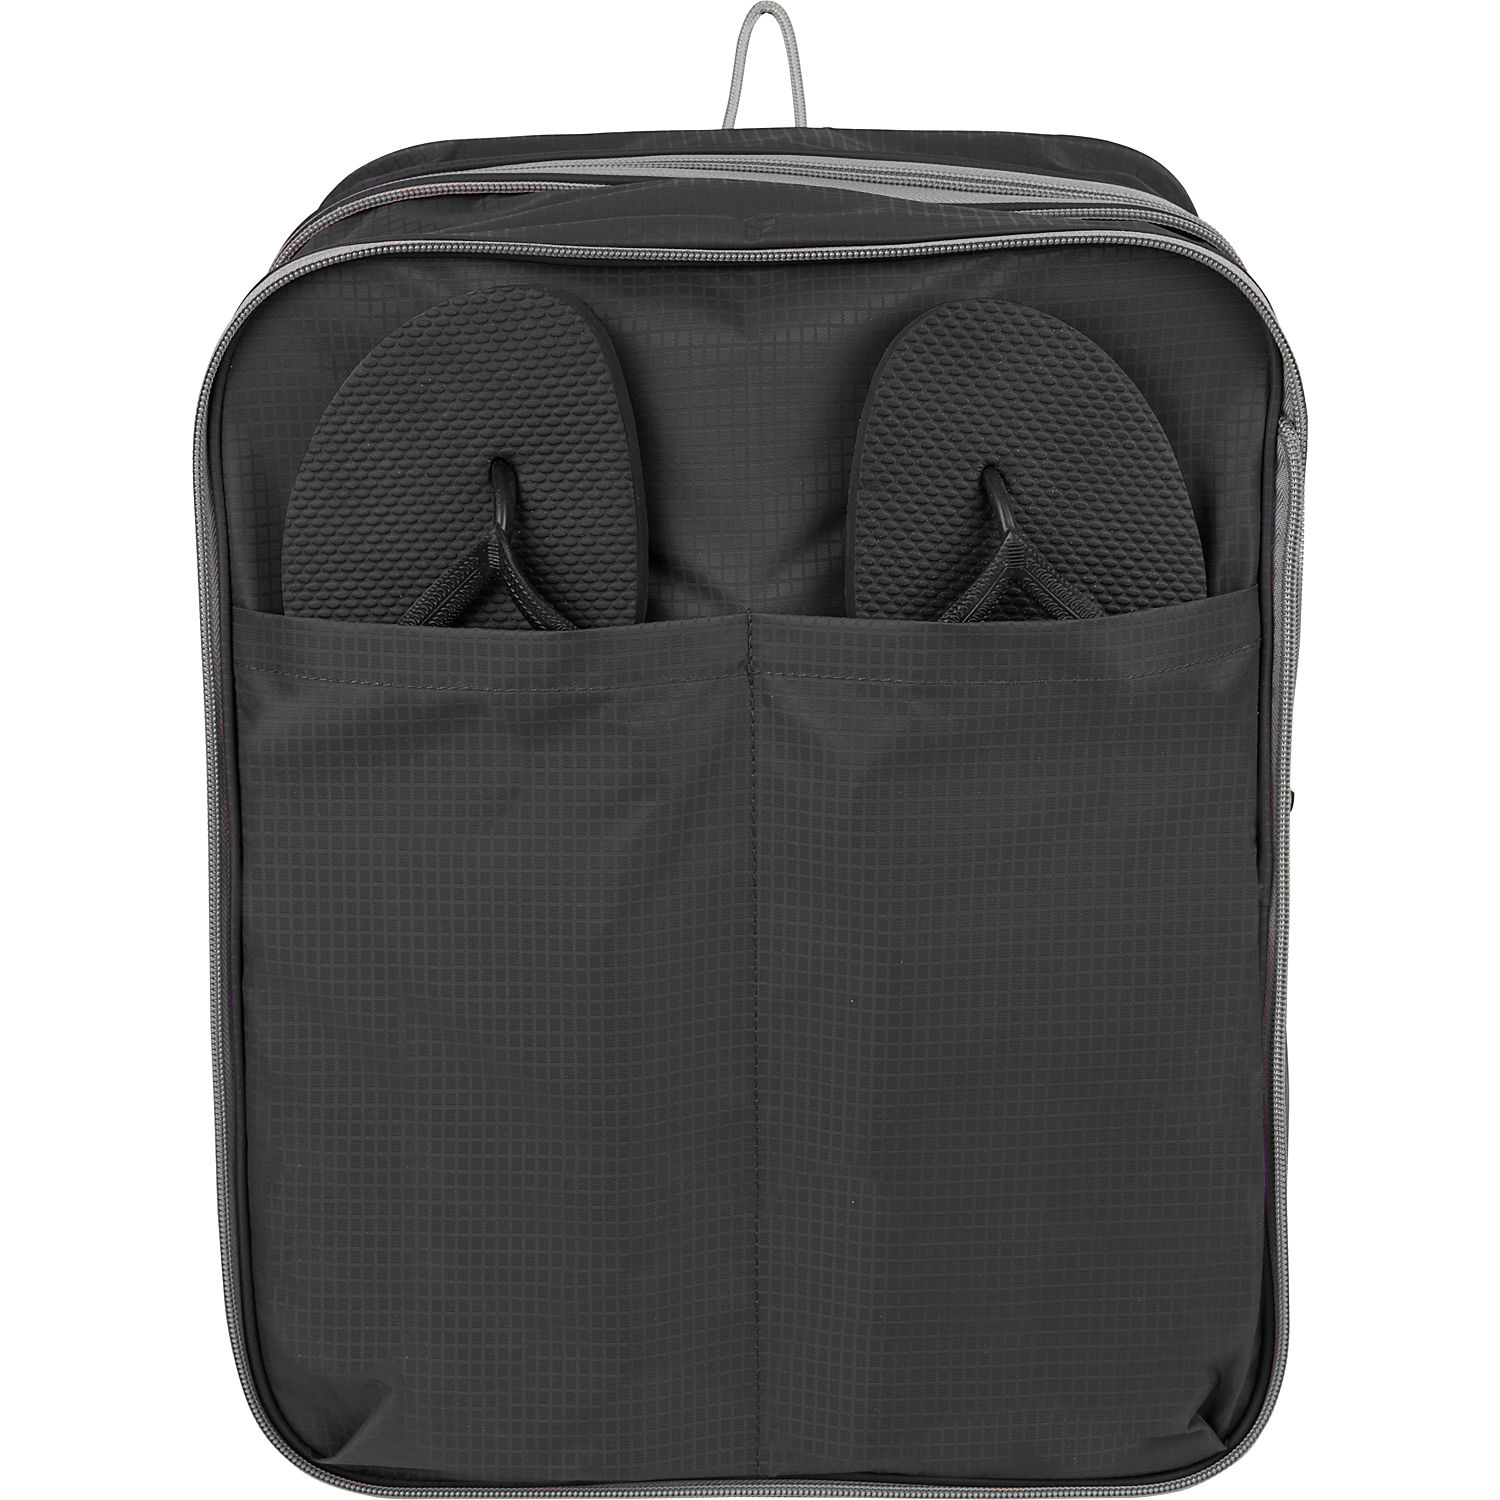 Travelon Expandable Packing Cube - eBags.com